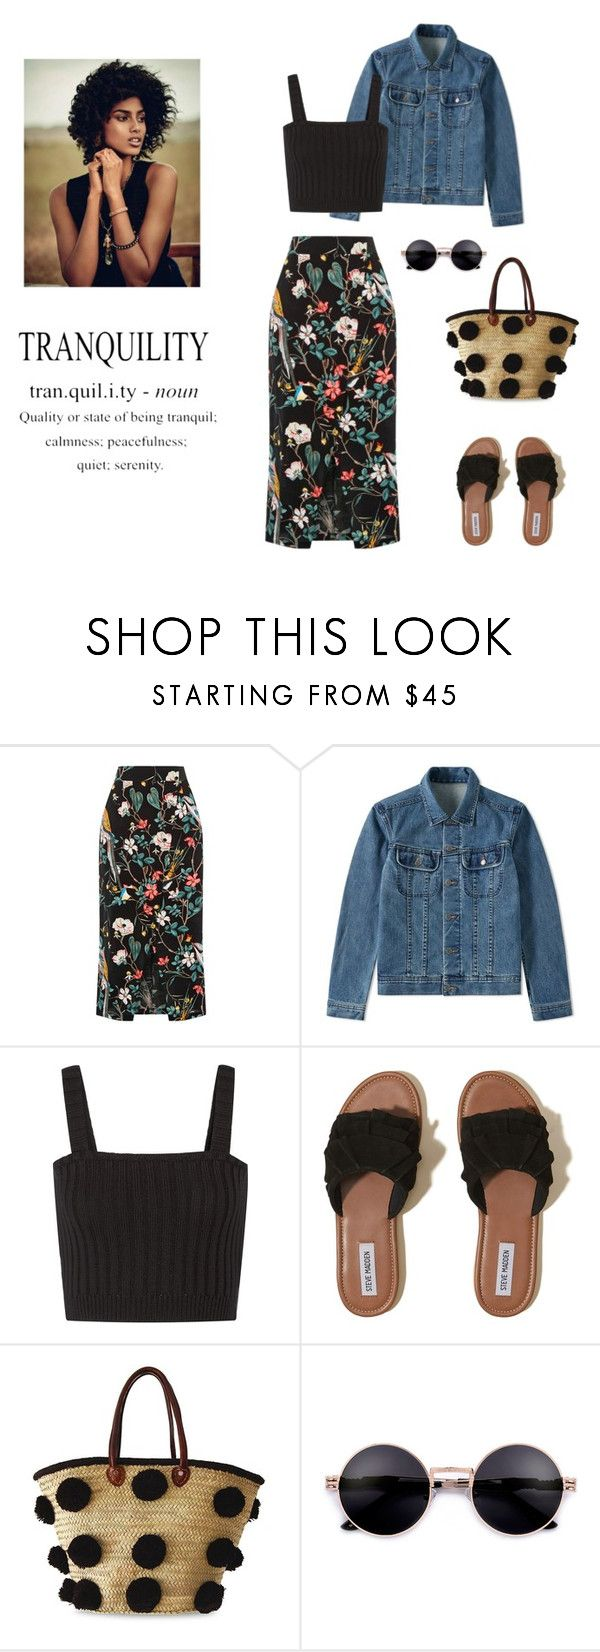 """""""Late summer days aka. early autumn"""" by dorey on Polyvore featuring Warehouse, A.P.C., Valentino, Hollister Co. and Soeur Du Maroc"""